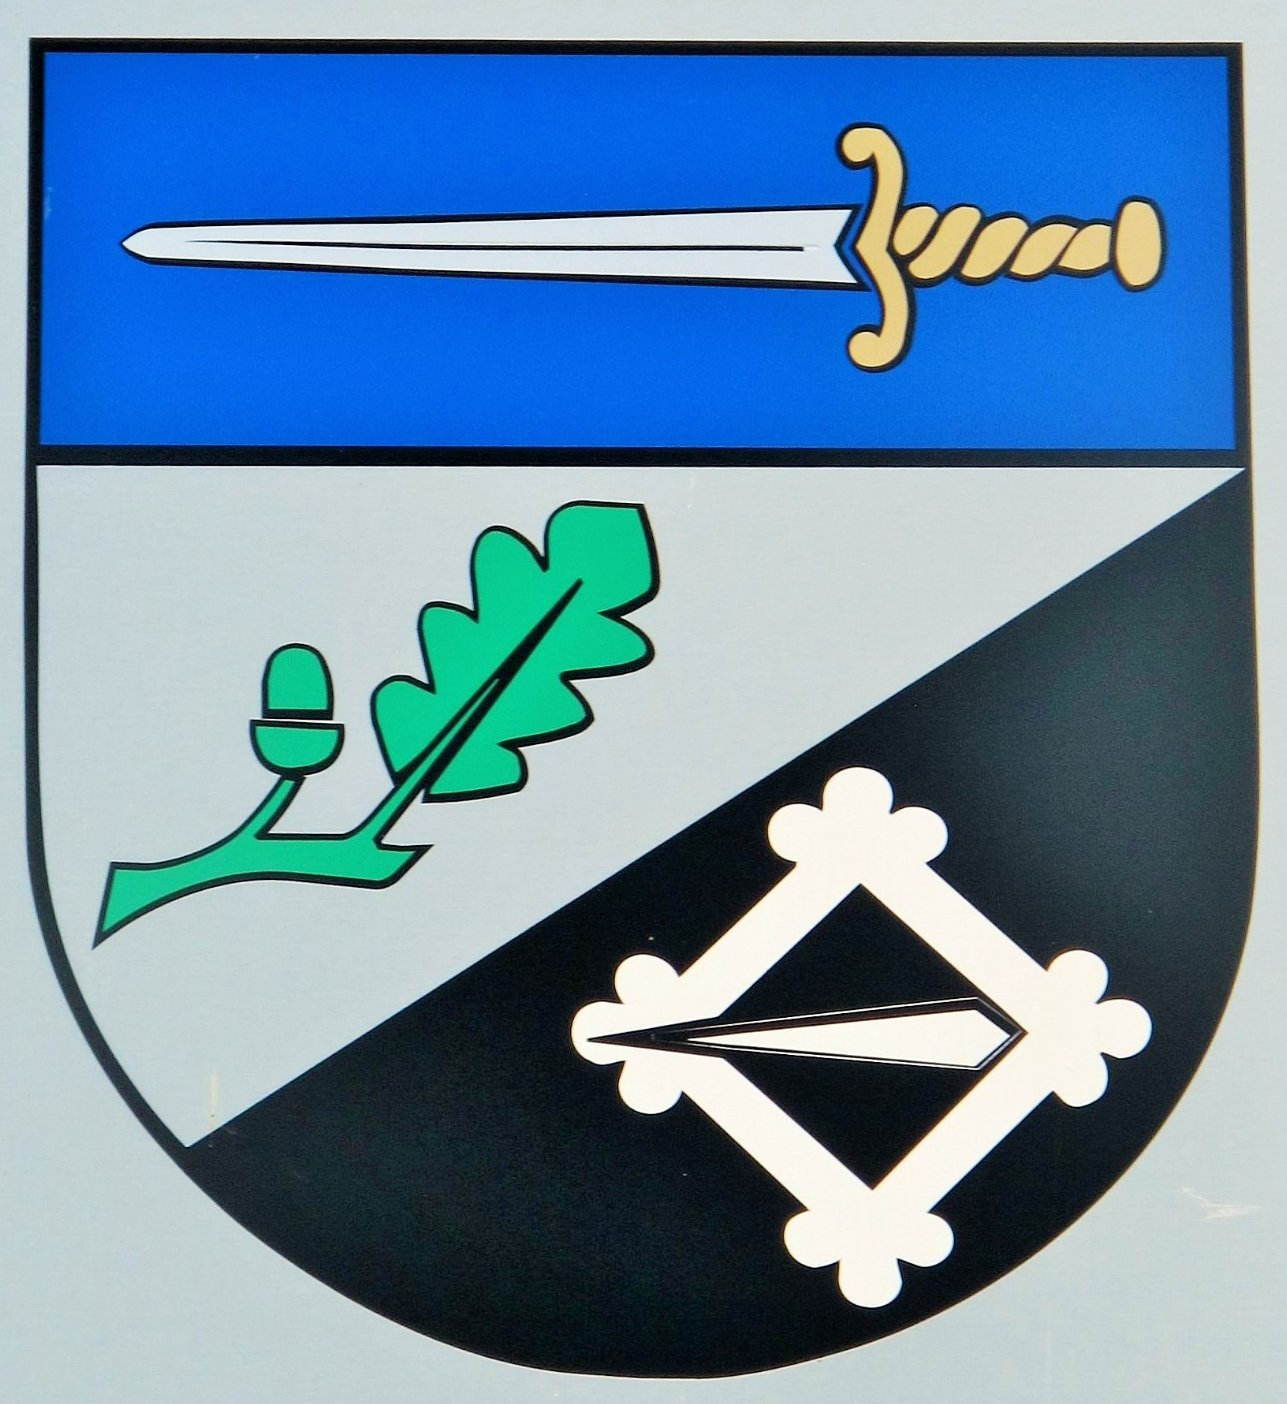 39-14_Wappen-Riveris_upload.jpg